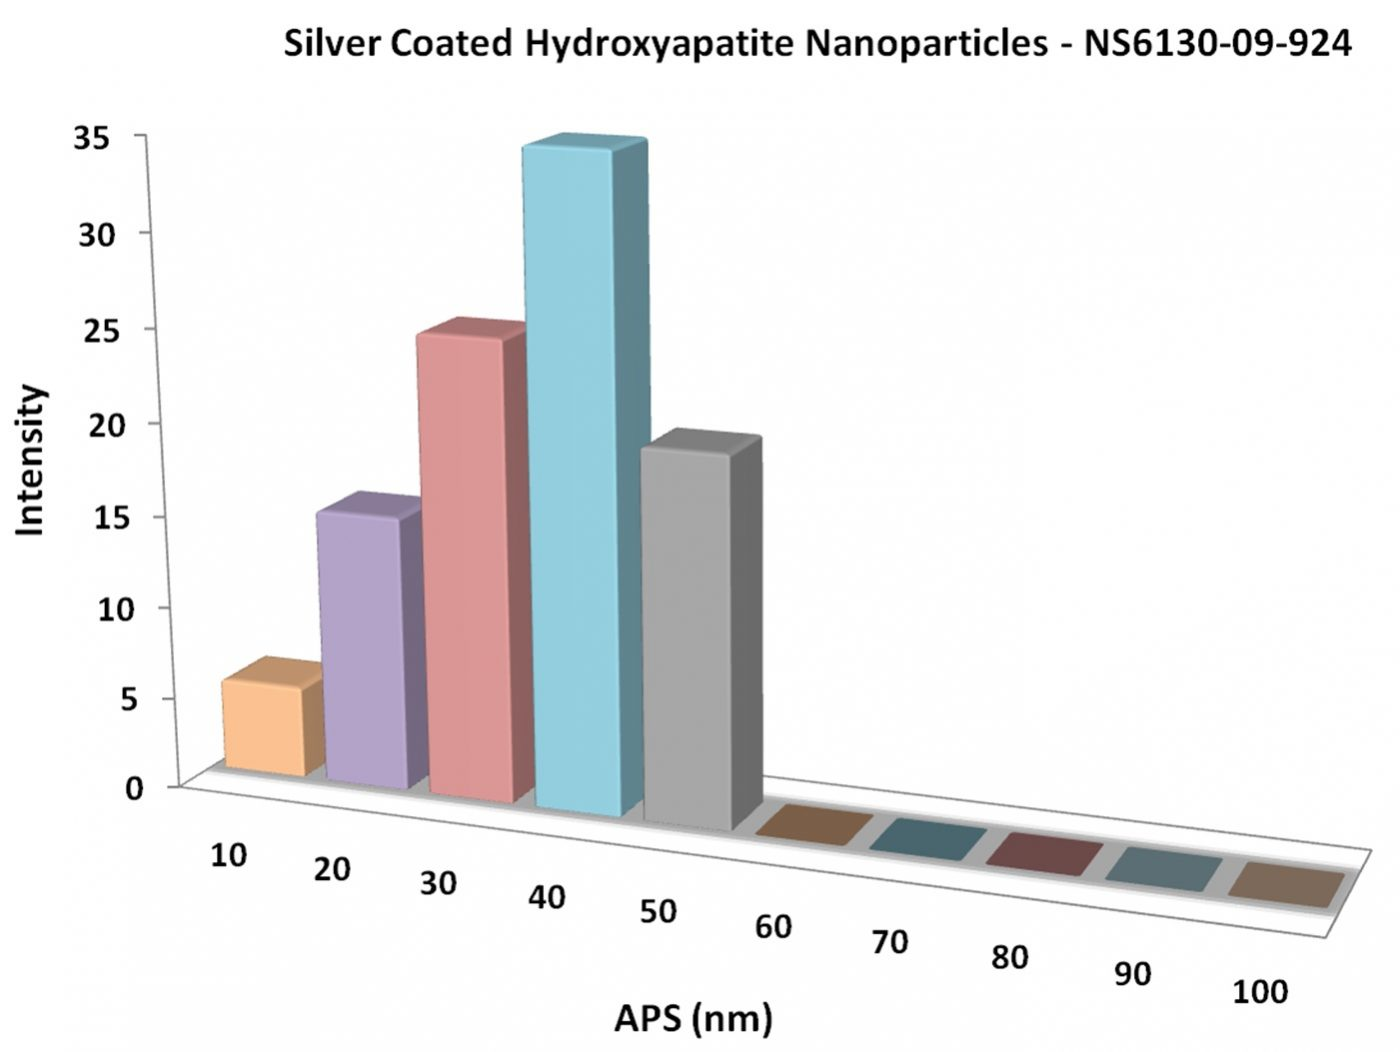 Particles Size Analysis - Silver Coated Hydroxyapatite Nanoparticles